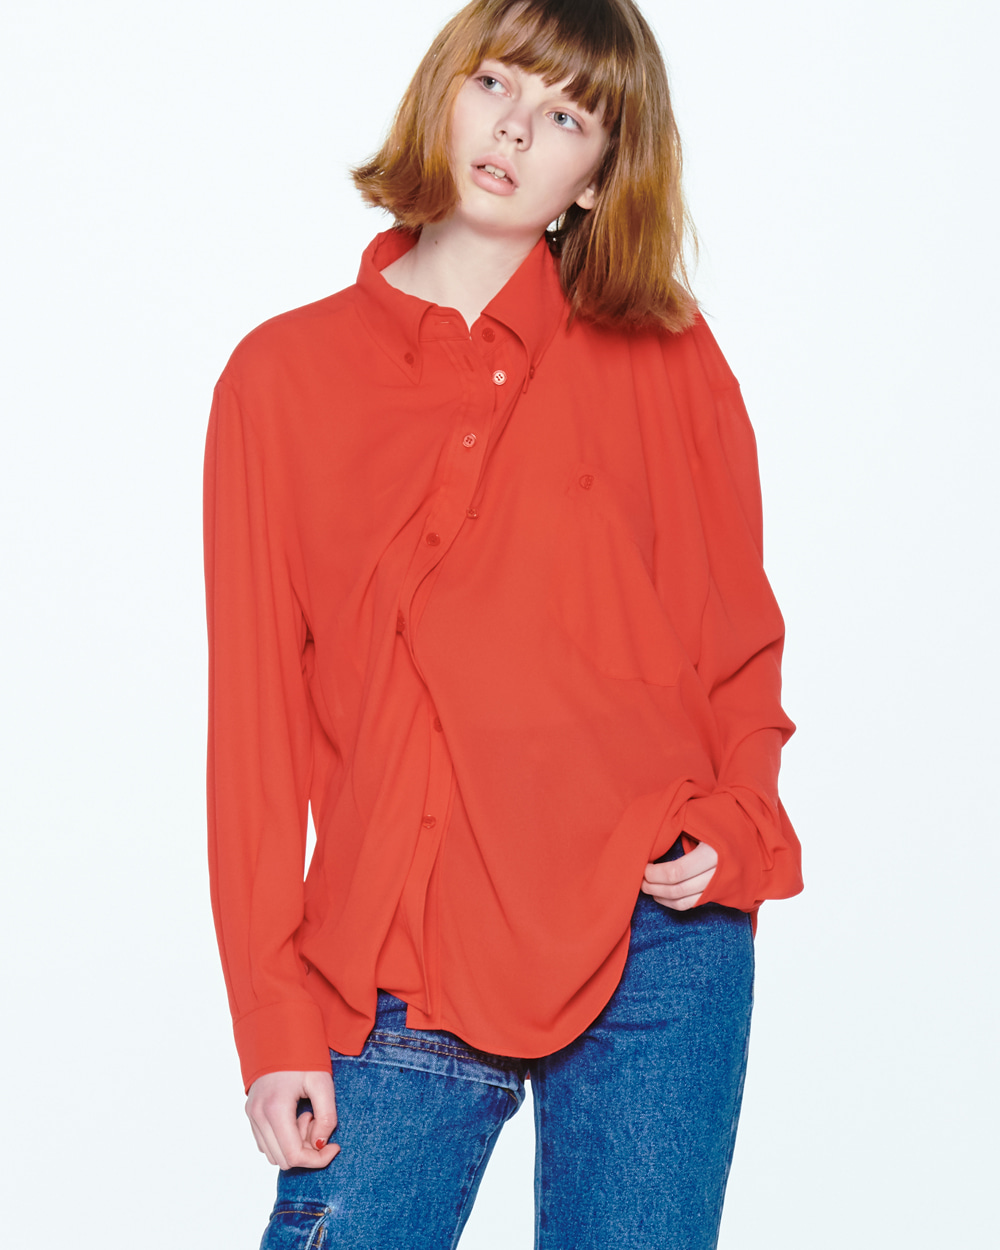 SS20 UNBLANCE SHOULDER RED SHIRT